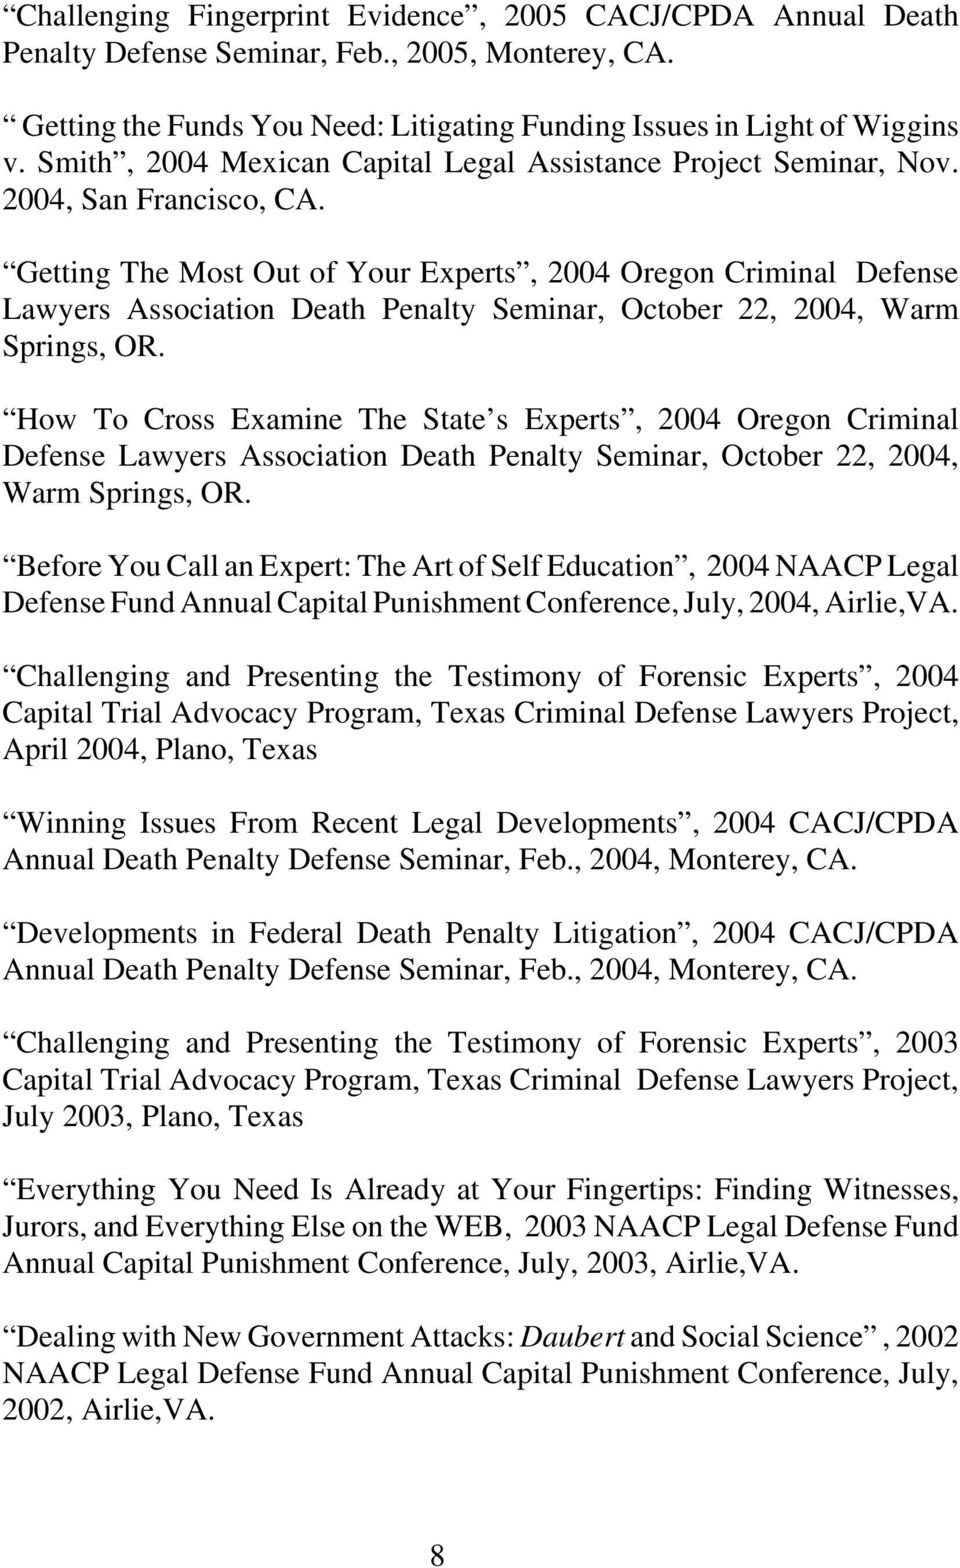 Getting The Most Out of Your Experts, 2004 Oregon Criminal Defense Lawyers Association Death Penalty Seminar, October 22, 2004, Warm Springs, OR.